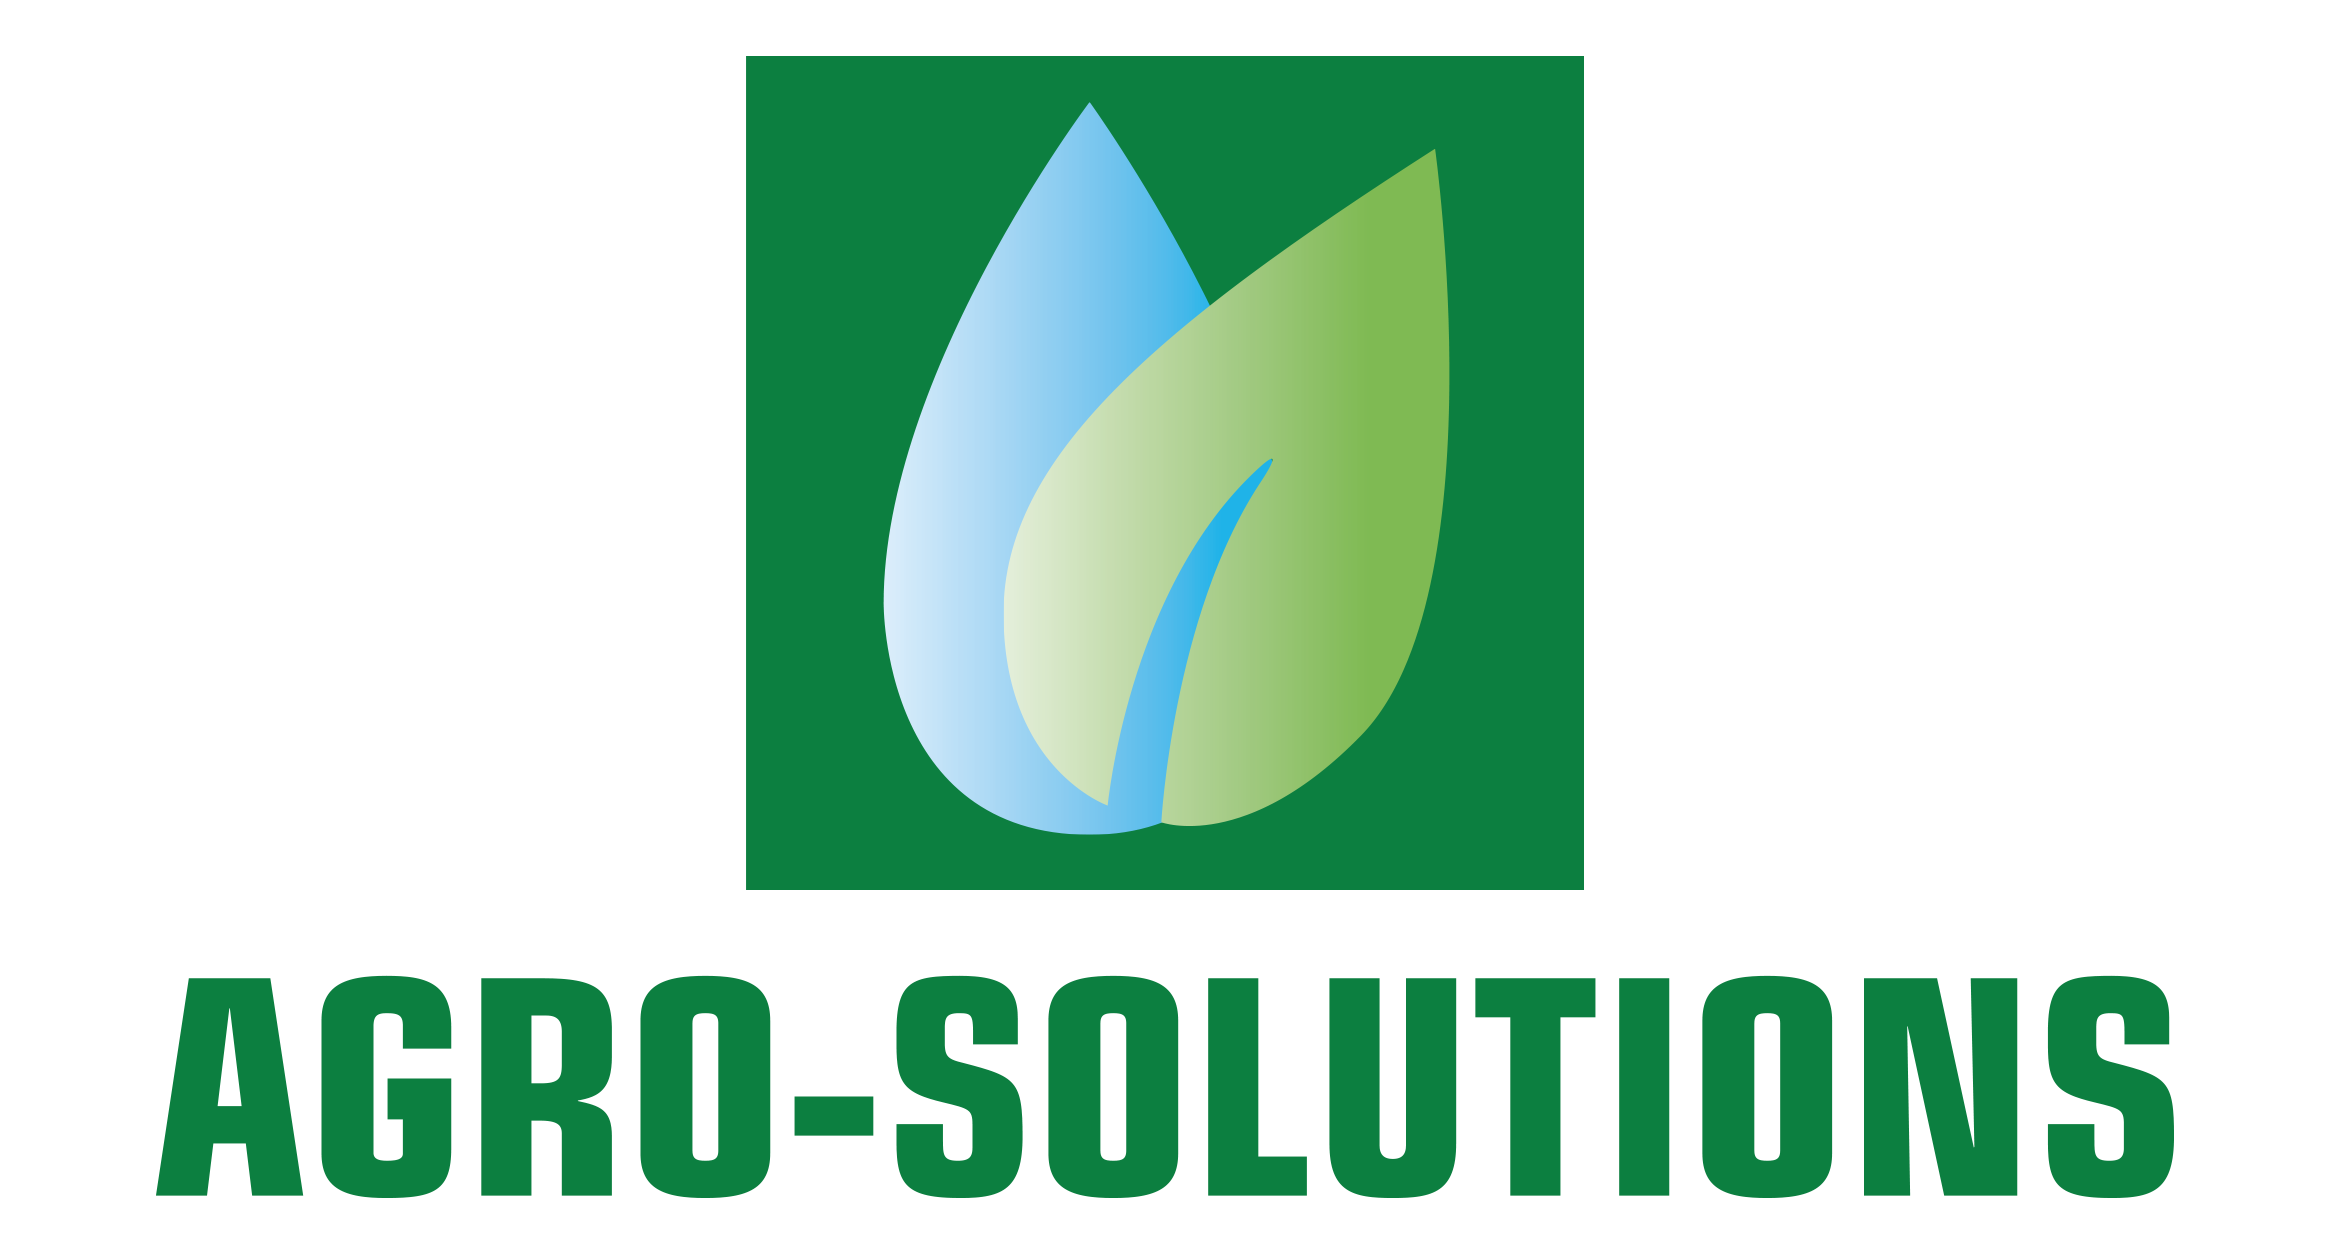 AGRO-SOLUTIONS